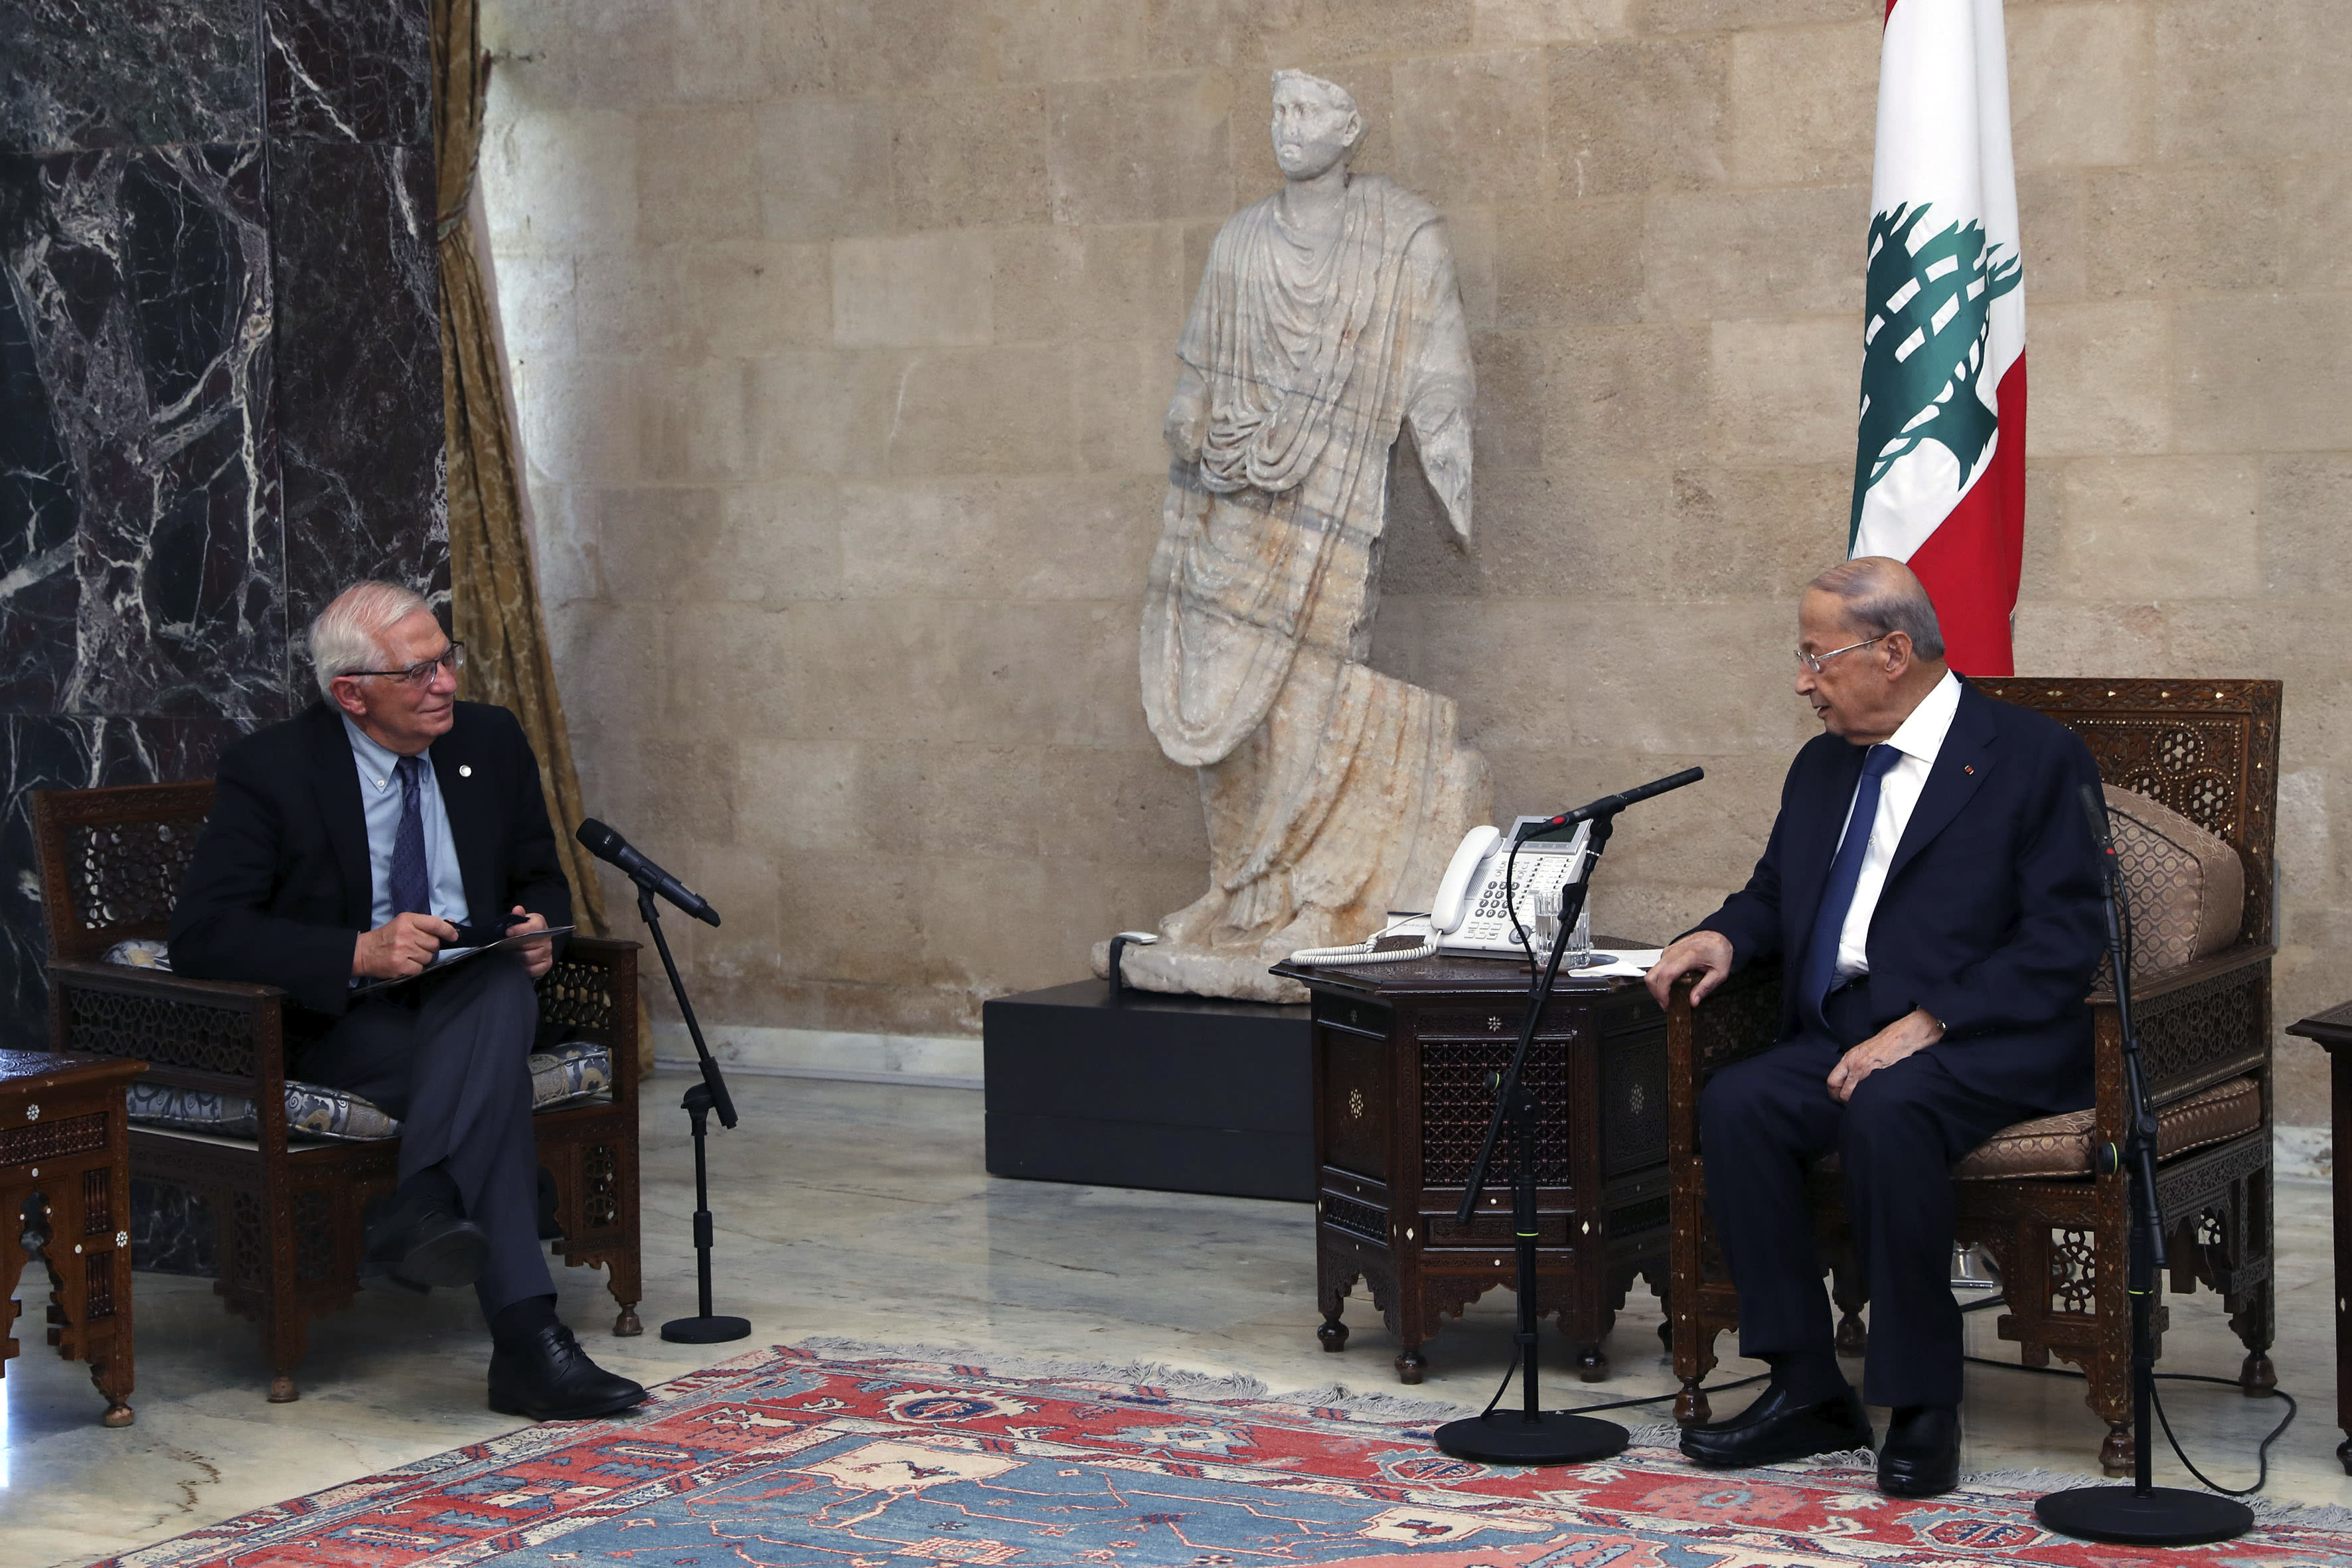 EU threatens Lebanese politicians with sanctions over crisis